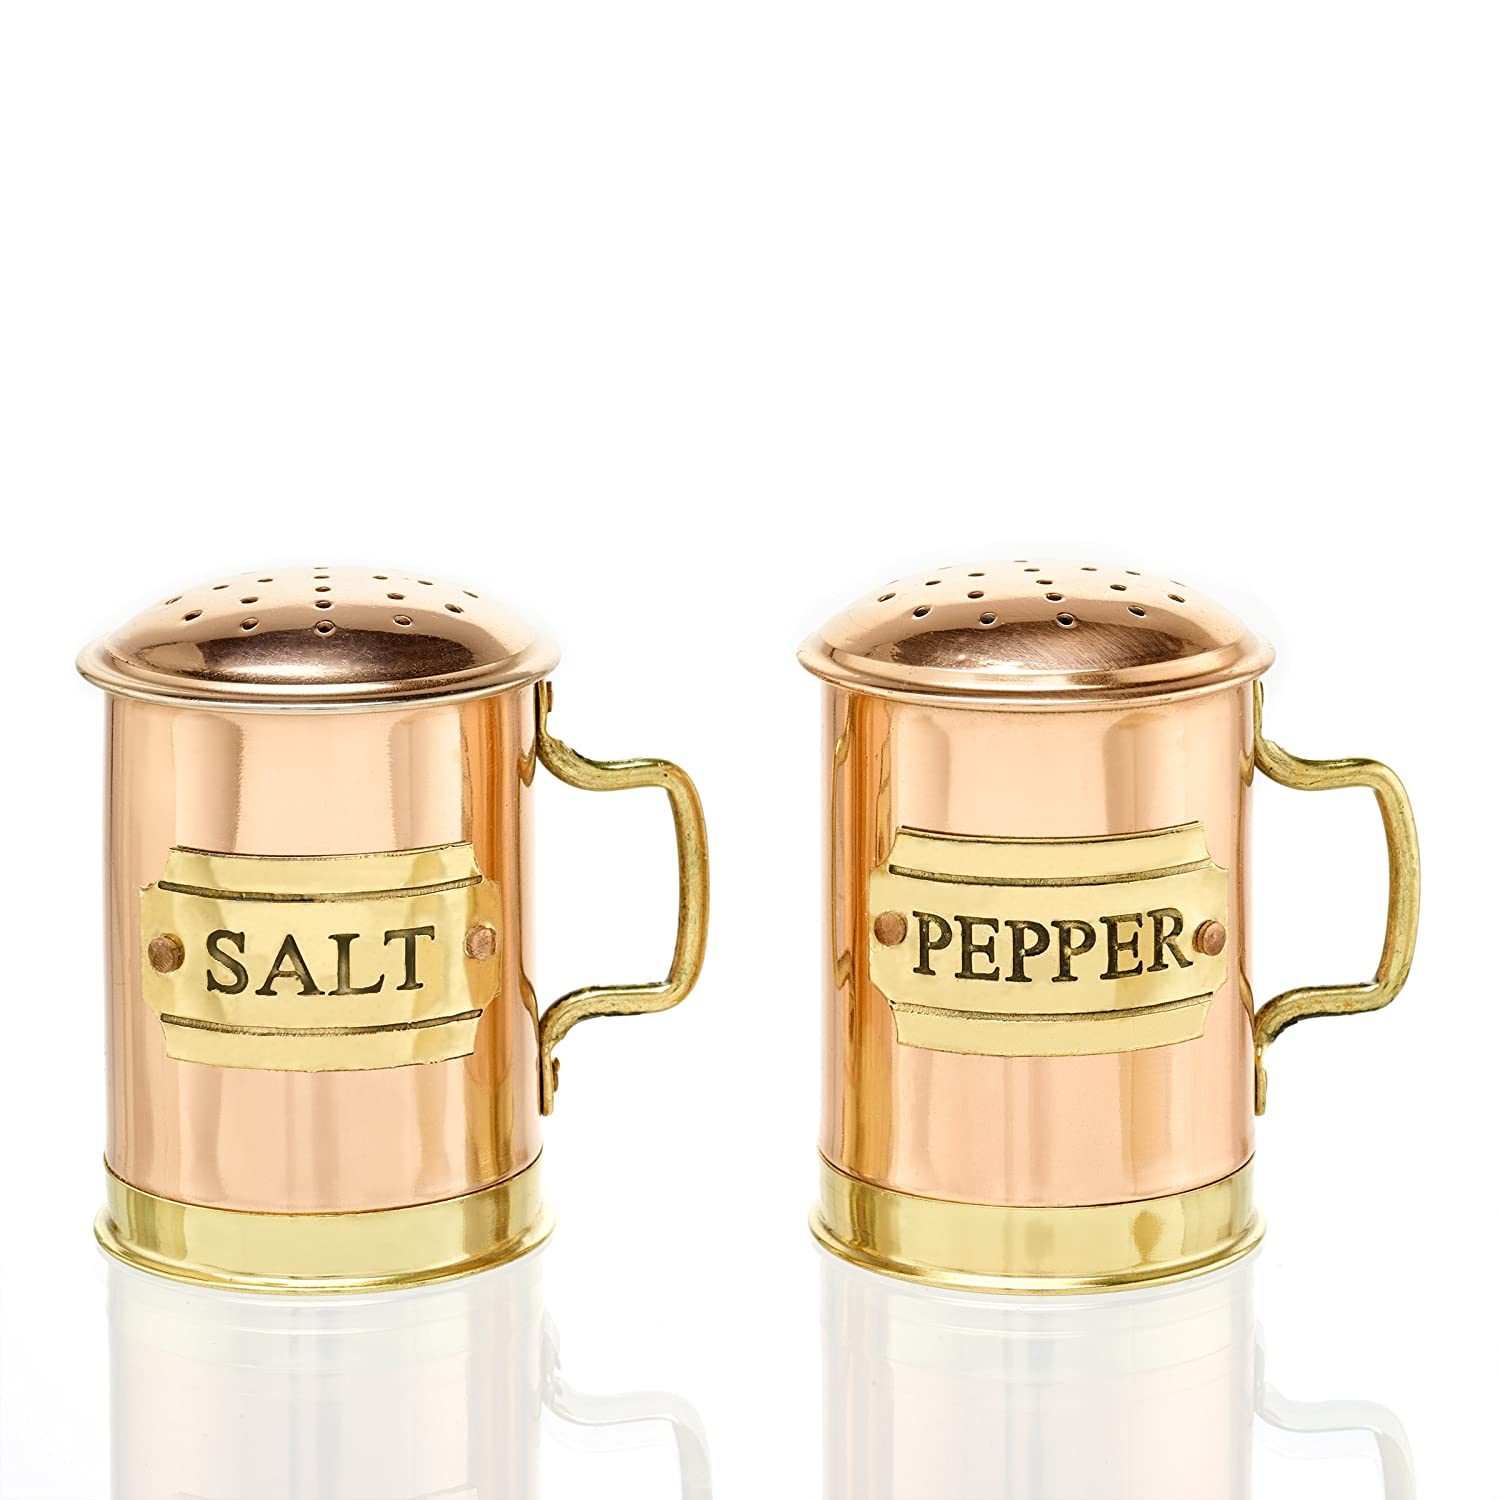 Copper 2-3 4-Inch Old Dutch 838 Salt and Pepper, 1¾ Qt, Antique Copper